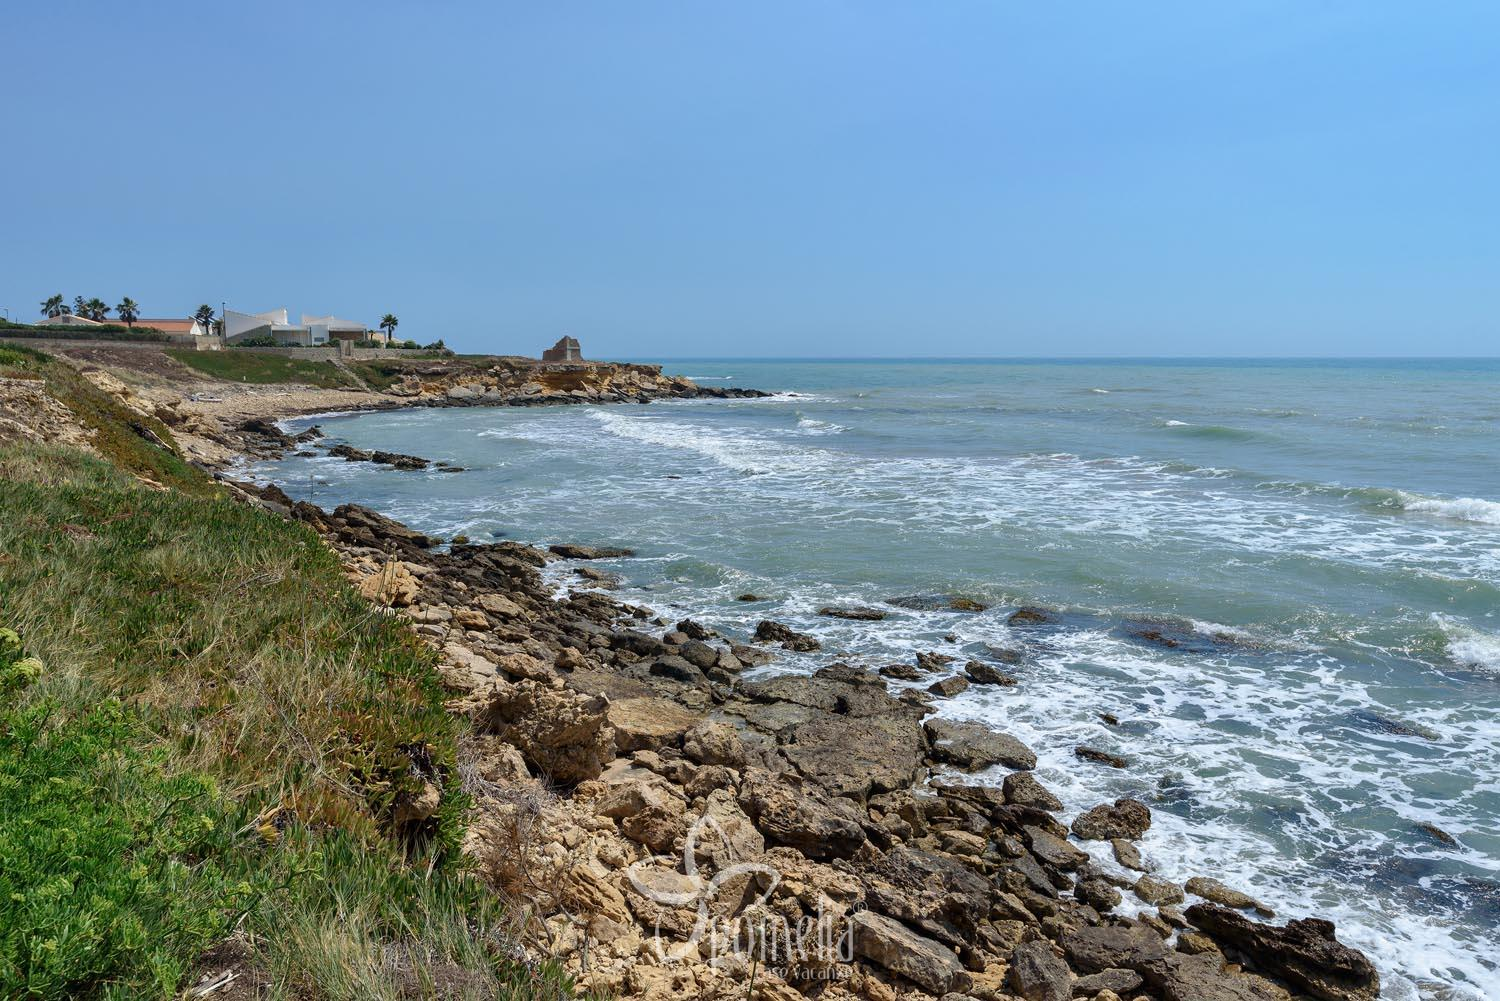 Elettra, seafront villa with beautiful view near Punta Secca - Overview